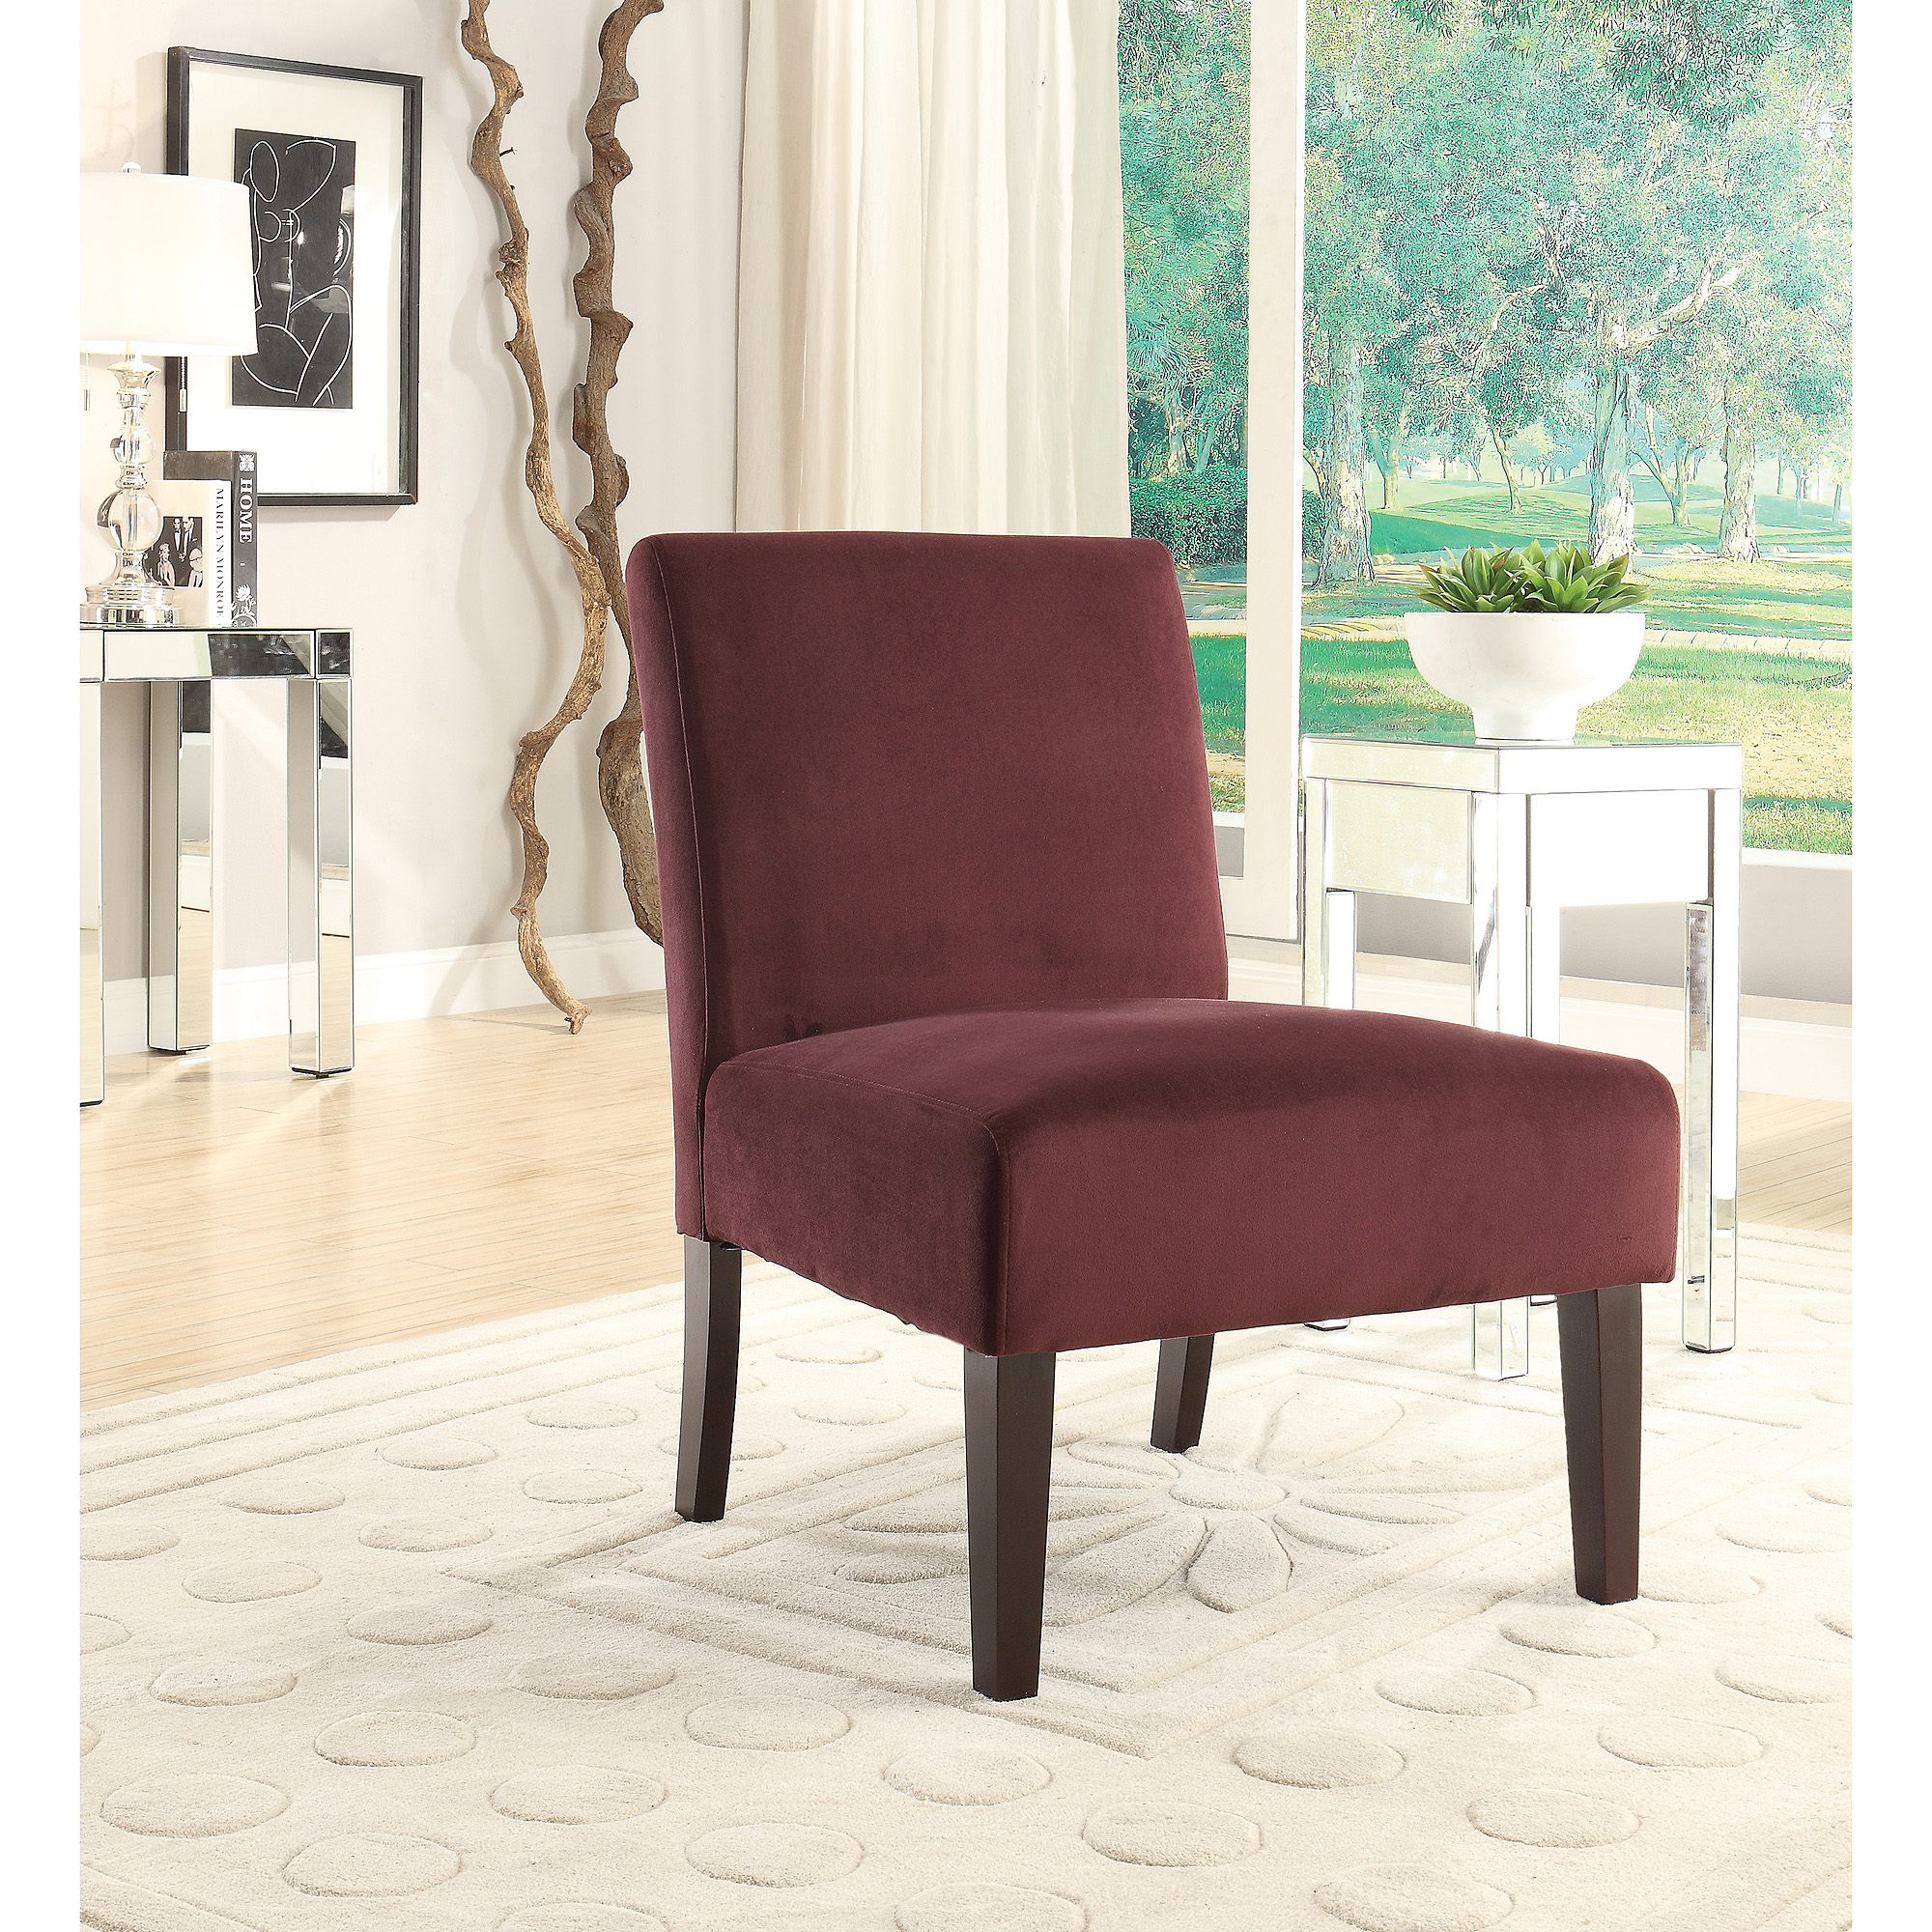 Avenue Six Laguna Armless Accent Chair in Velvet by Ave Six